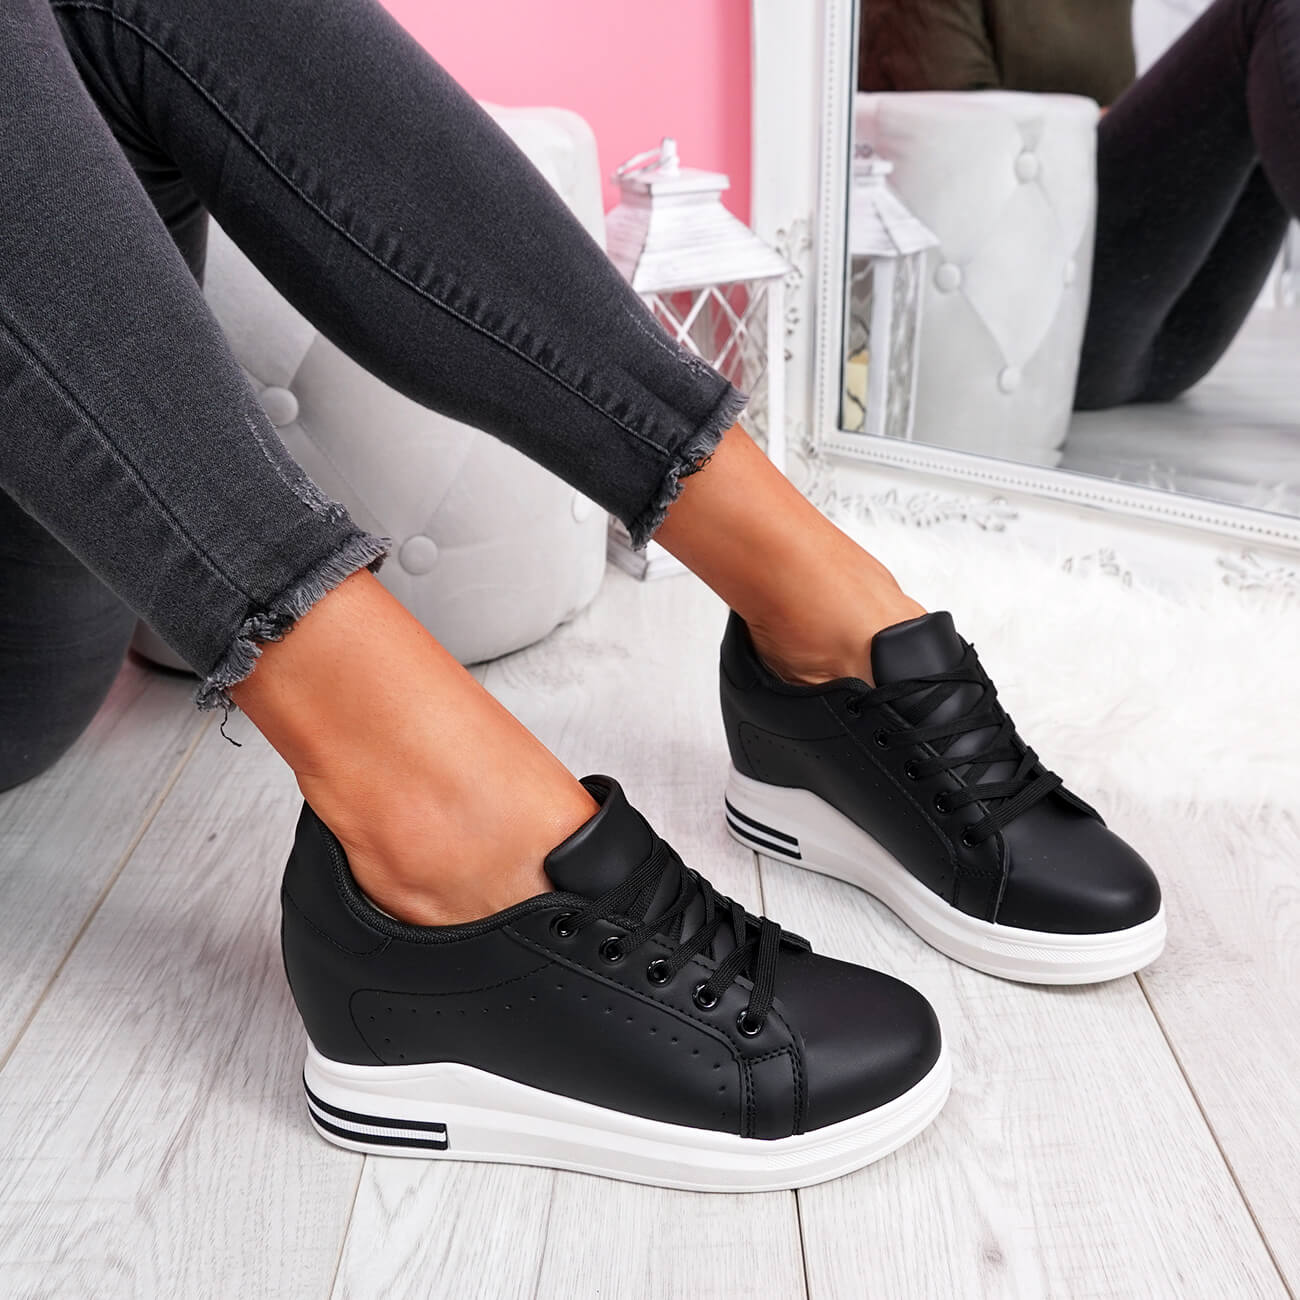 WOMENS-LADIES-LACE-UP-WEDGE-TRAINERS-HEEL-SNEAKERS-SHINY-PARTY-WOMEN-SHOES thumbnail 7